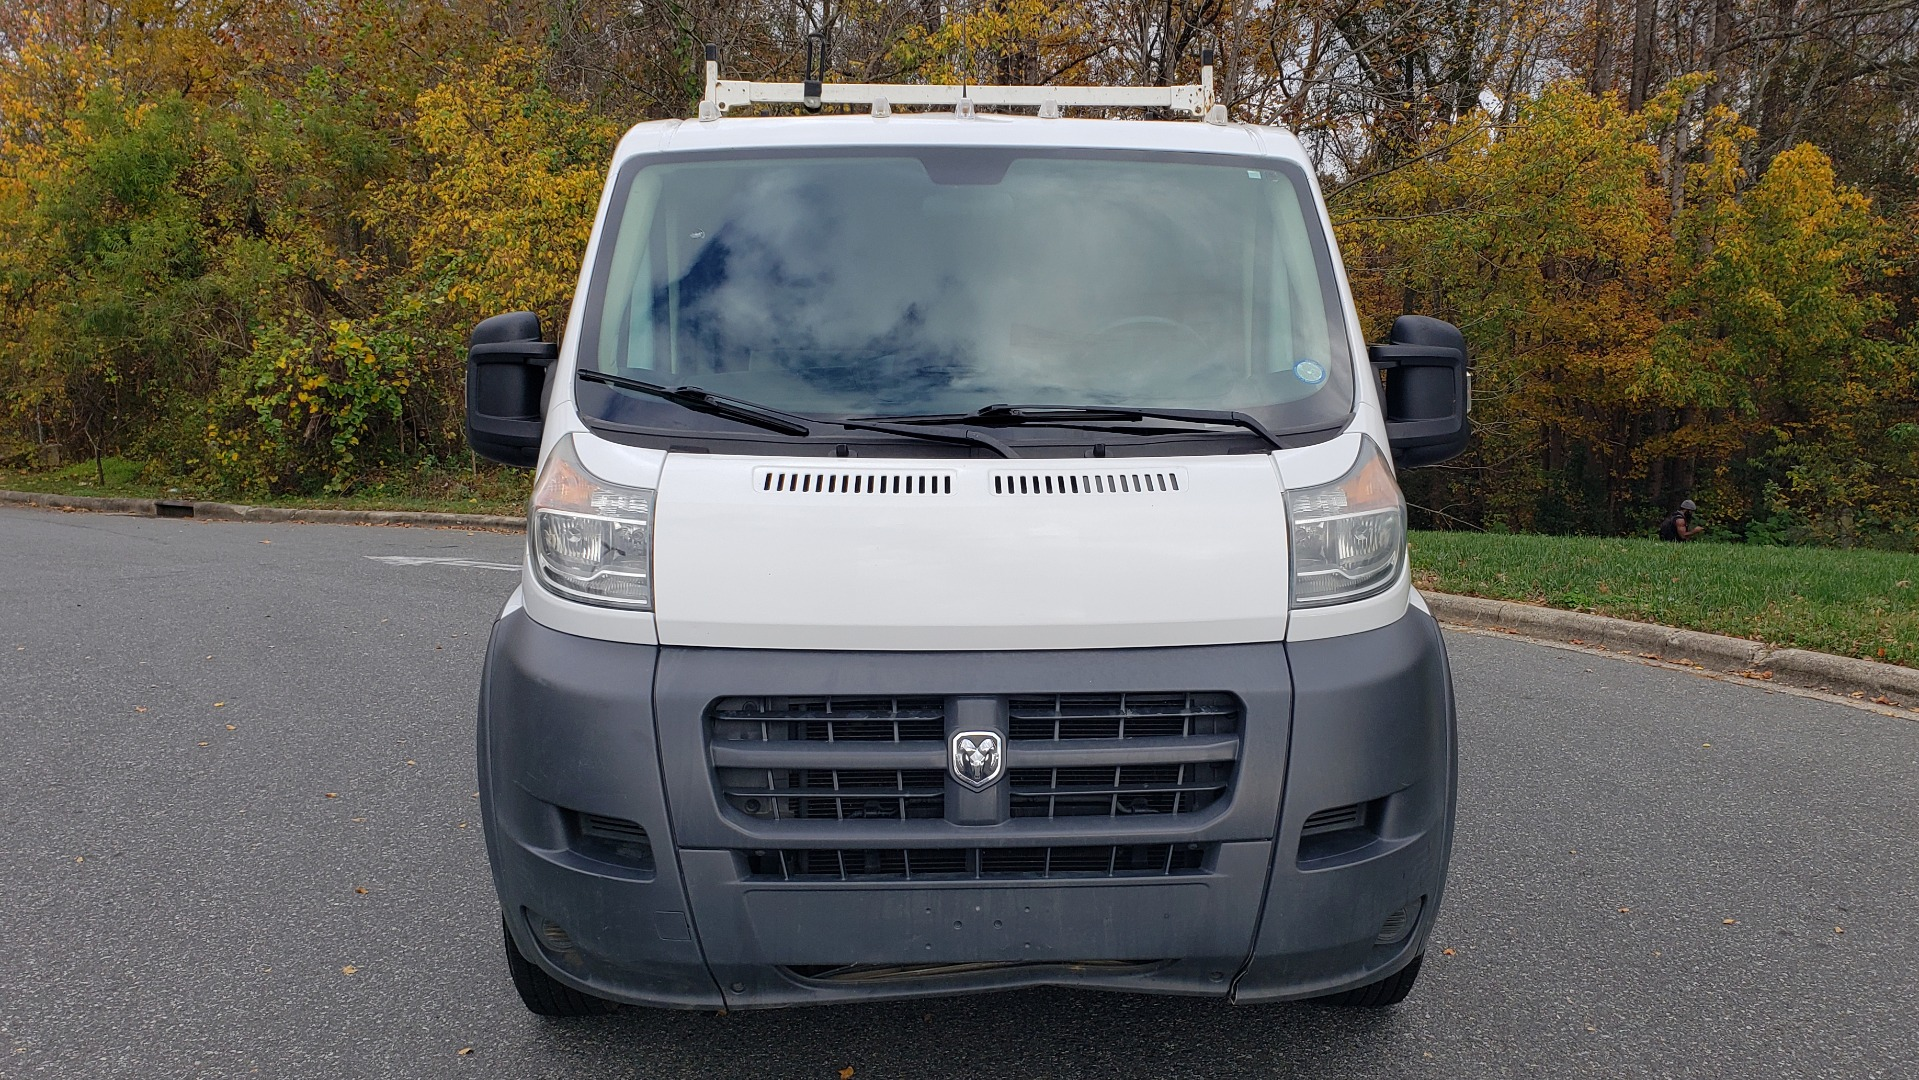 Used 2015 Ram PROMASTER CARGO VAN 136-INCH WB / LOW ROOF / LADDER RACK / INSIDE RACKS for sale $15,995 at Formula Imports in Charlotte NC 28227 13